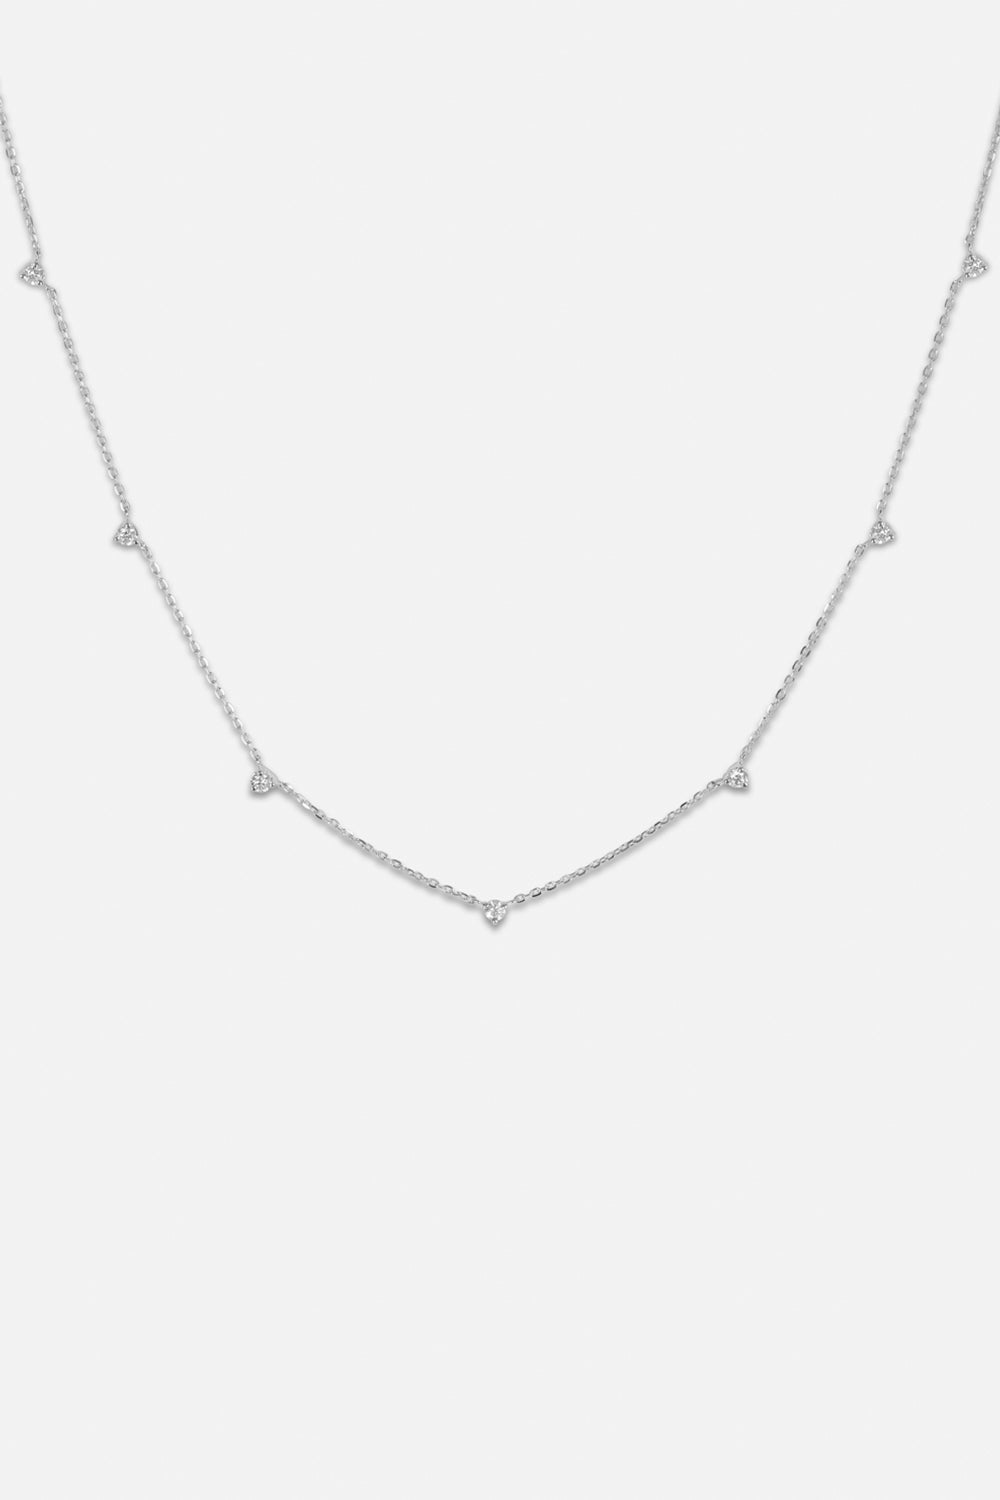 7 Round Diamond Necklace | White Gold